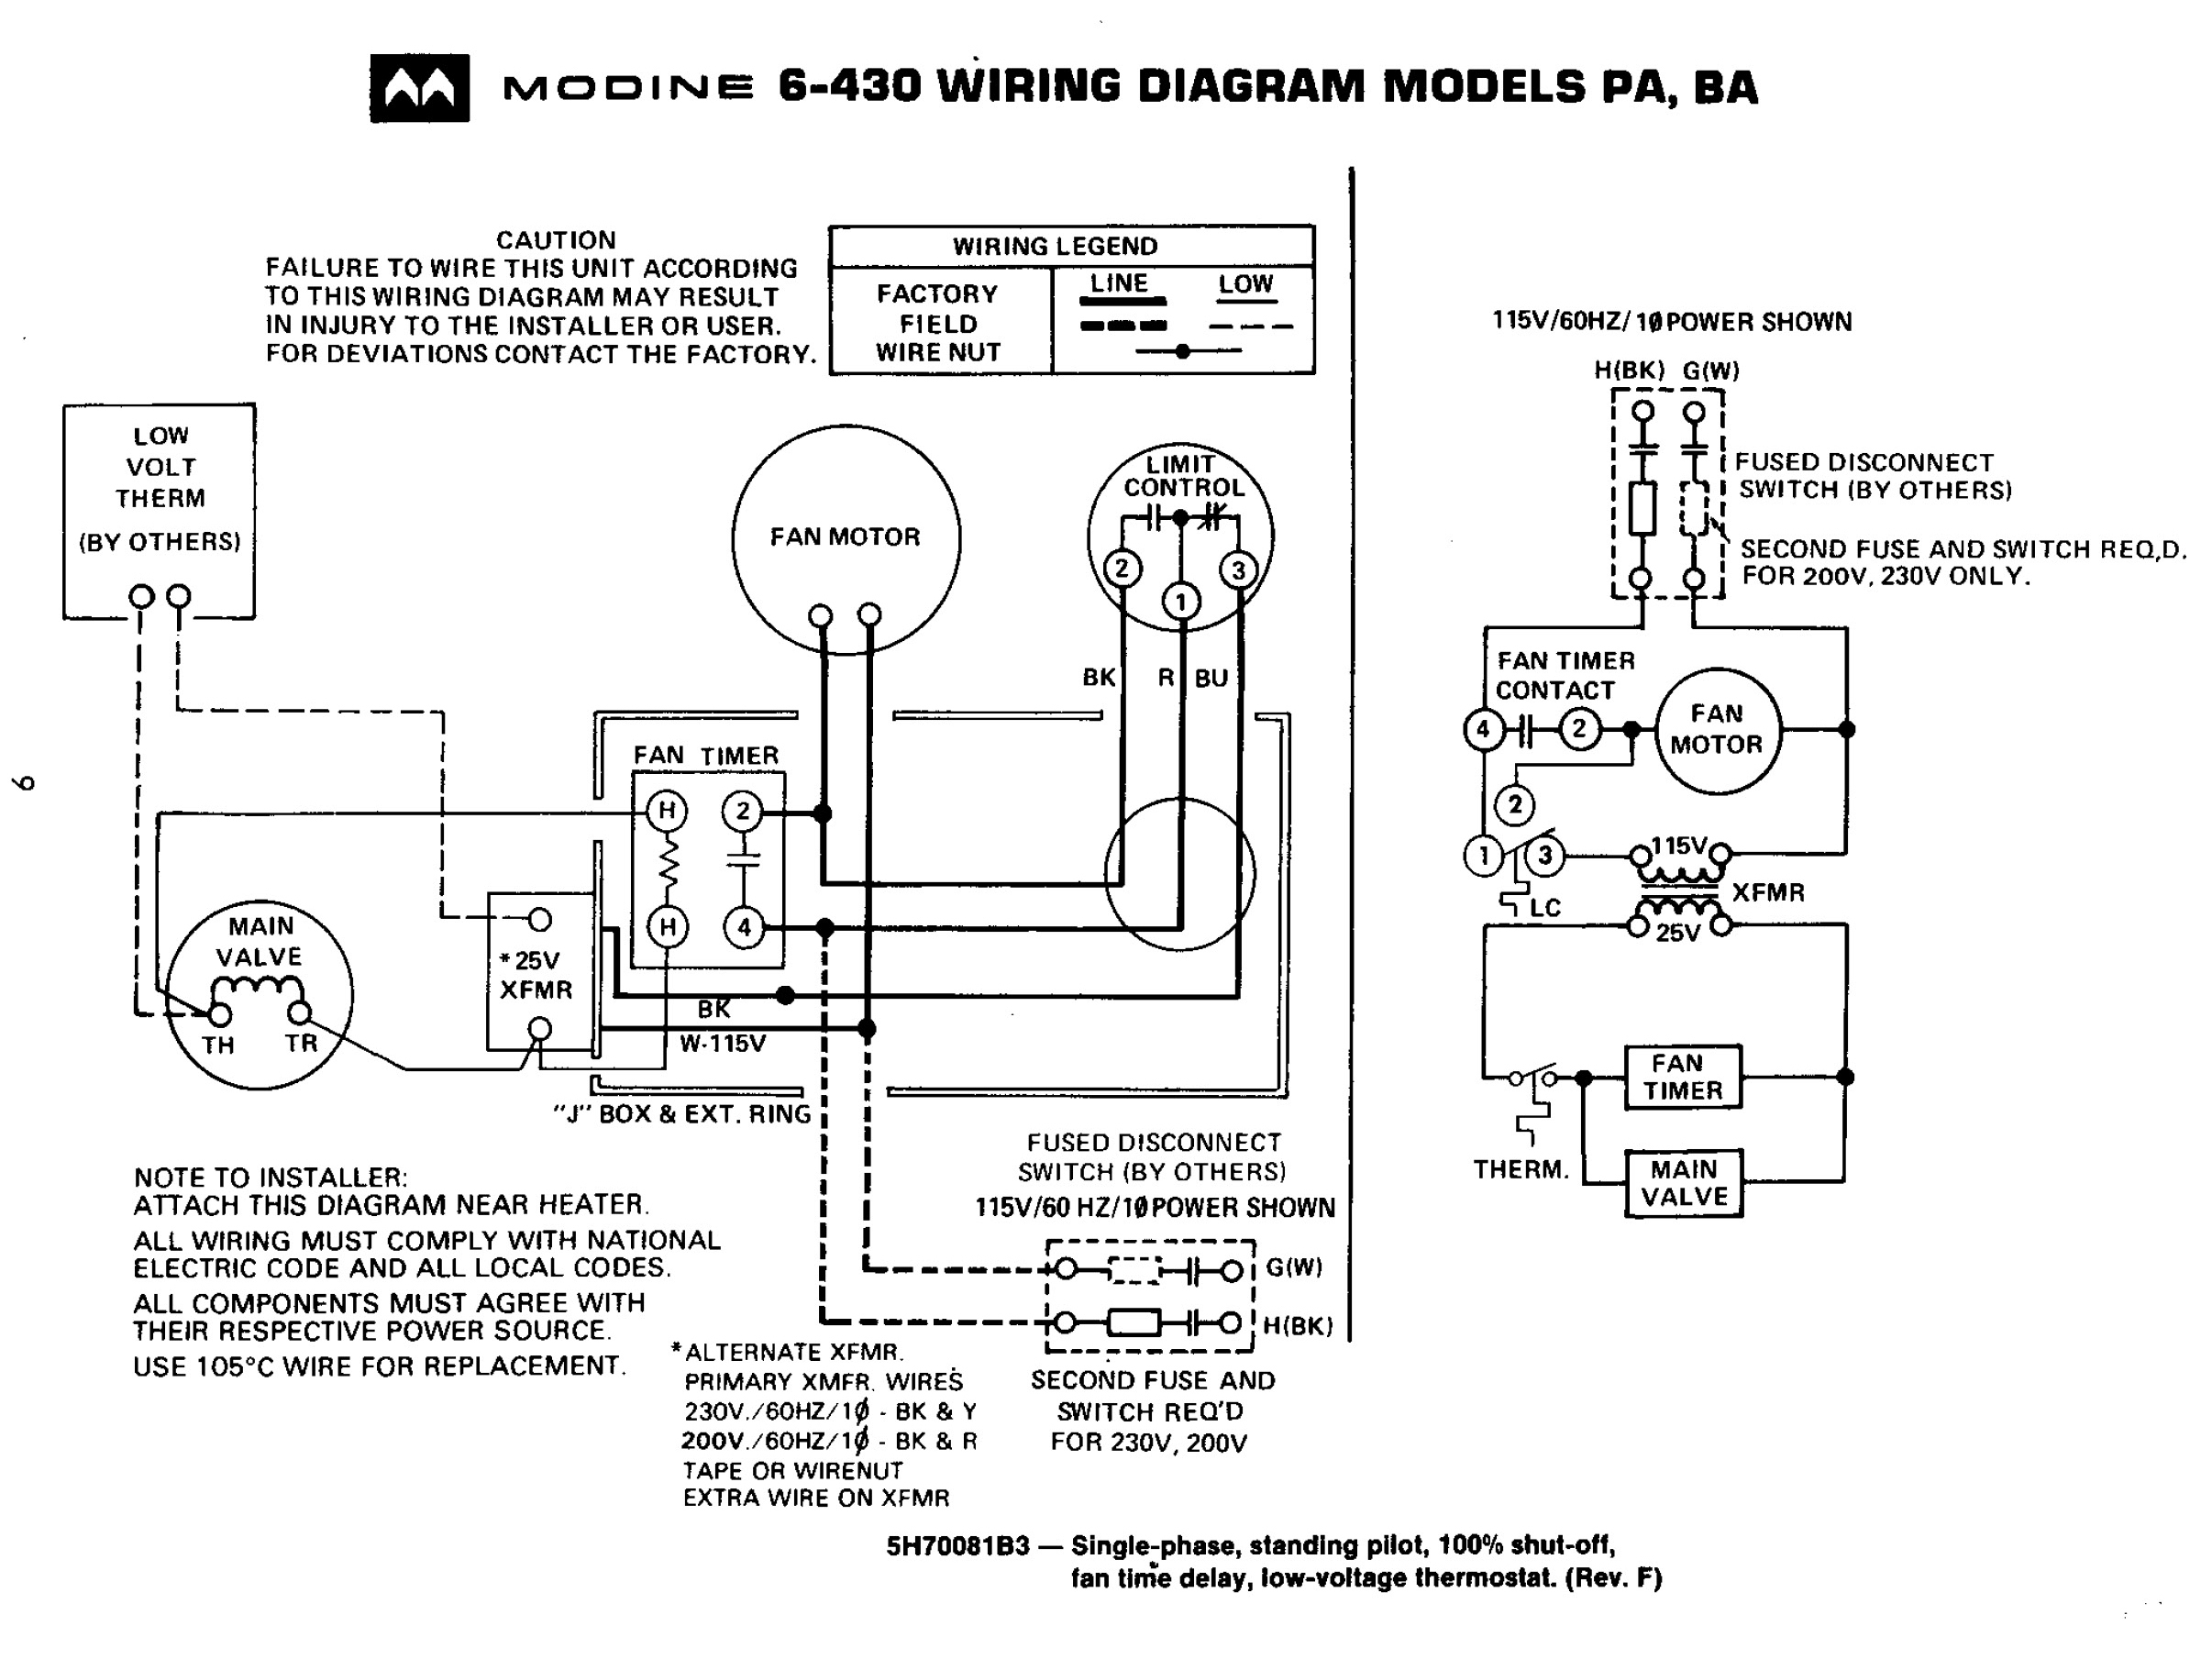 Modine Garage Heater Wiring Diagram | Manual E-Books - Modine Gas Heater Wiring Diagram